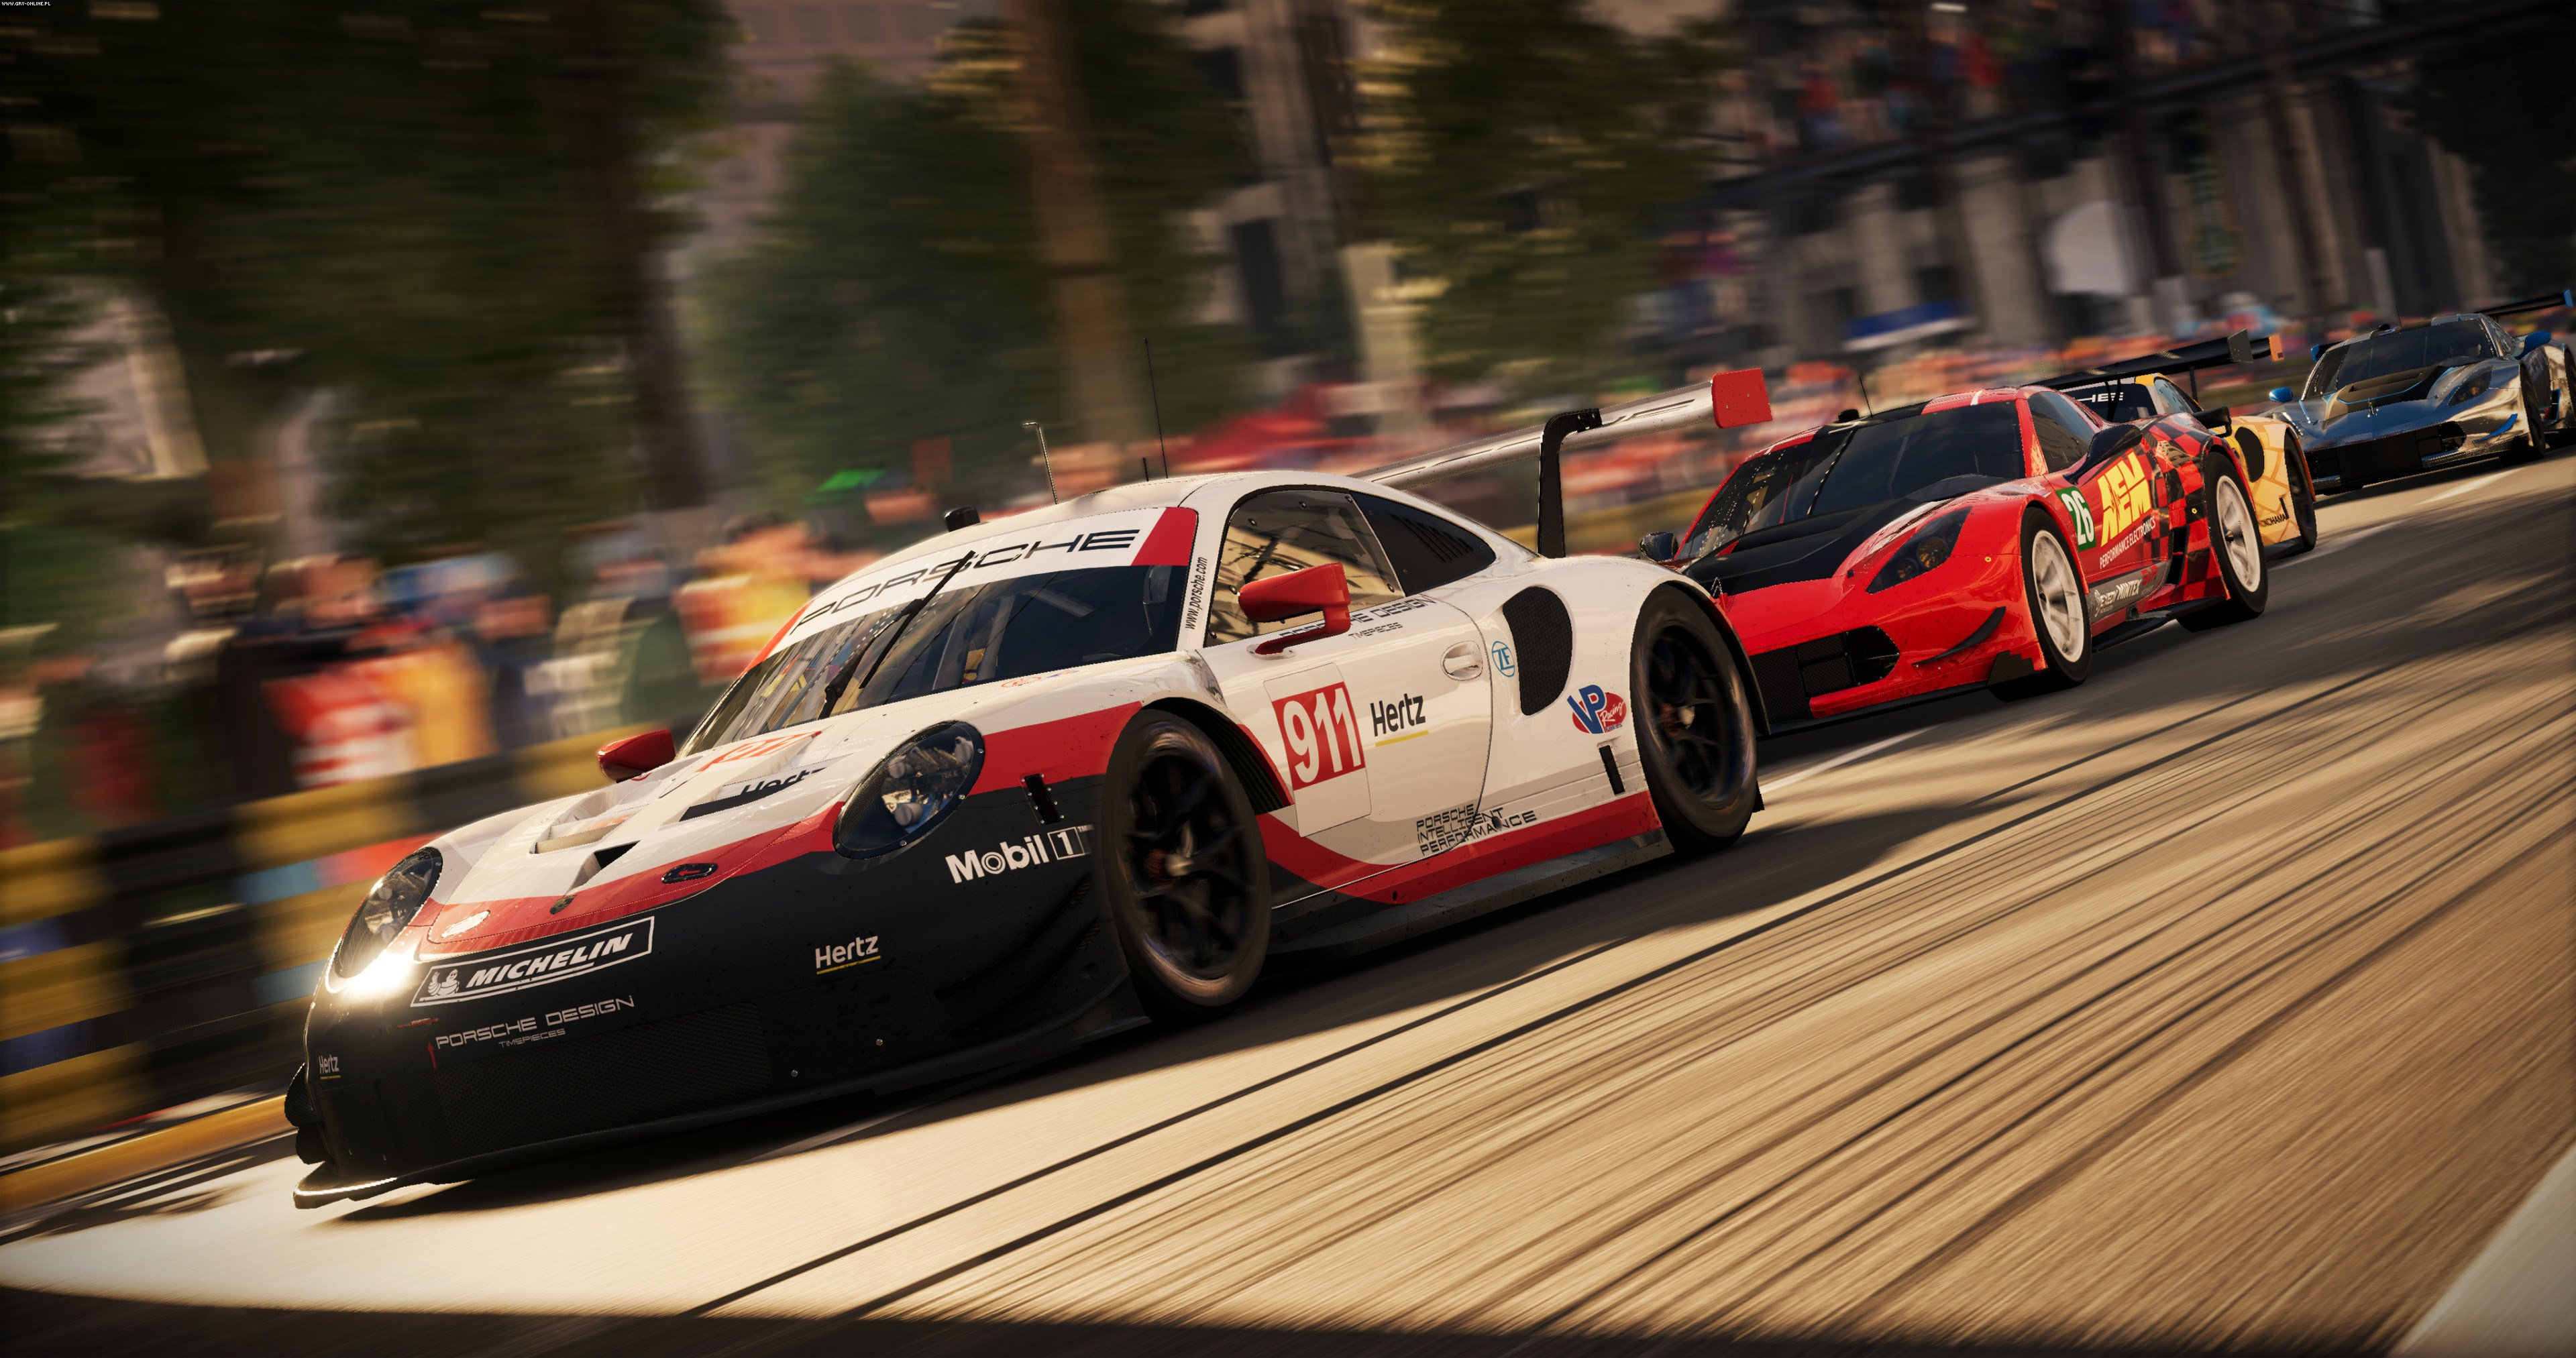 GRID PC, PS4, XONE Games Image 70/85, Codemasters Software